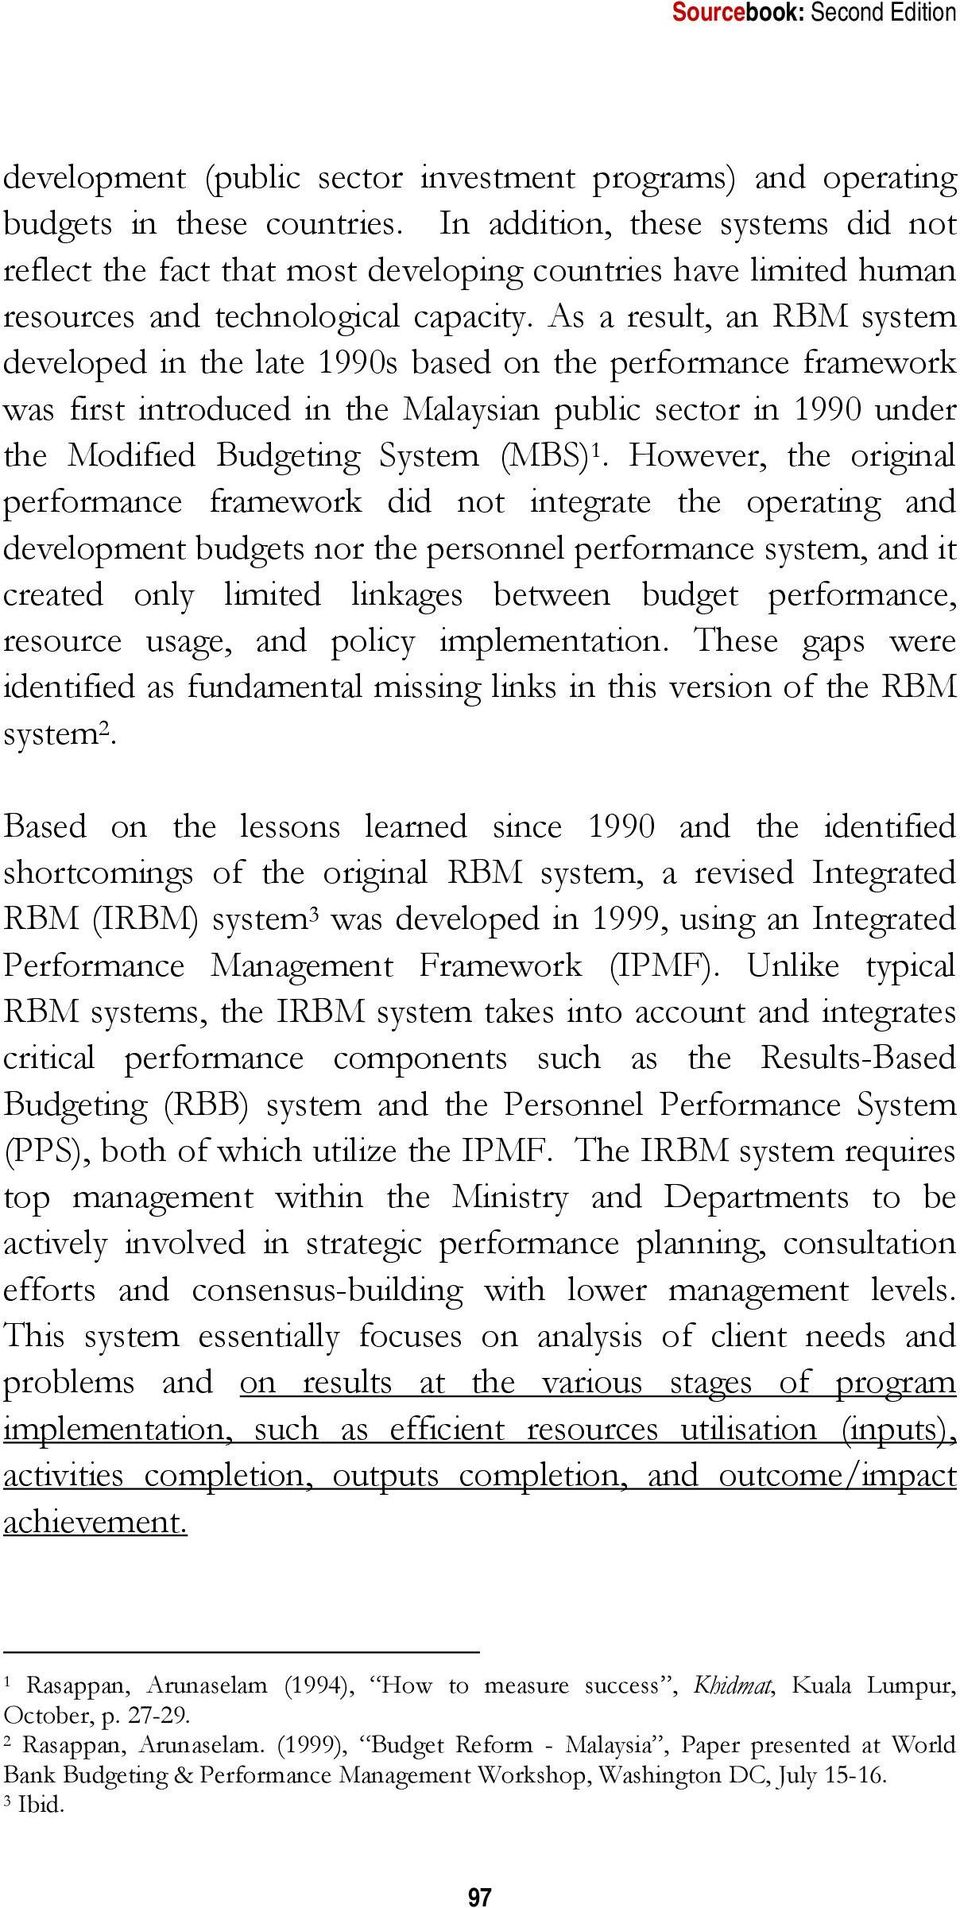 As a result, an RBM system developed in the late 1990s based on the performance framework was first introduced in the Malaysian public sector in 1990 under the Modified Budgeting System (MBS) 1.